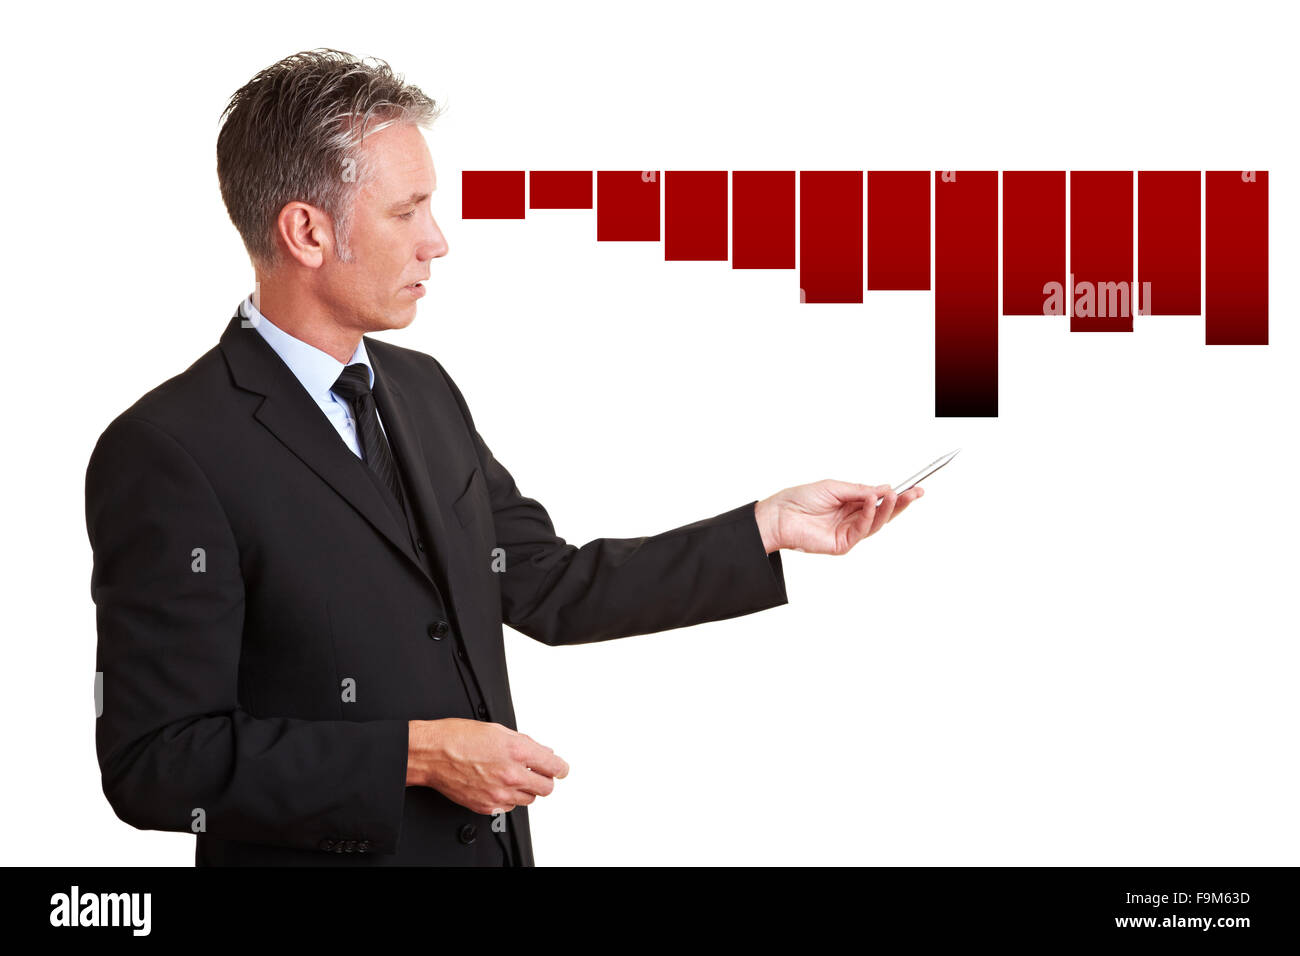 Senior manager explaining financial losses with a chart - Stock Image